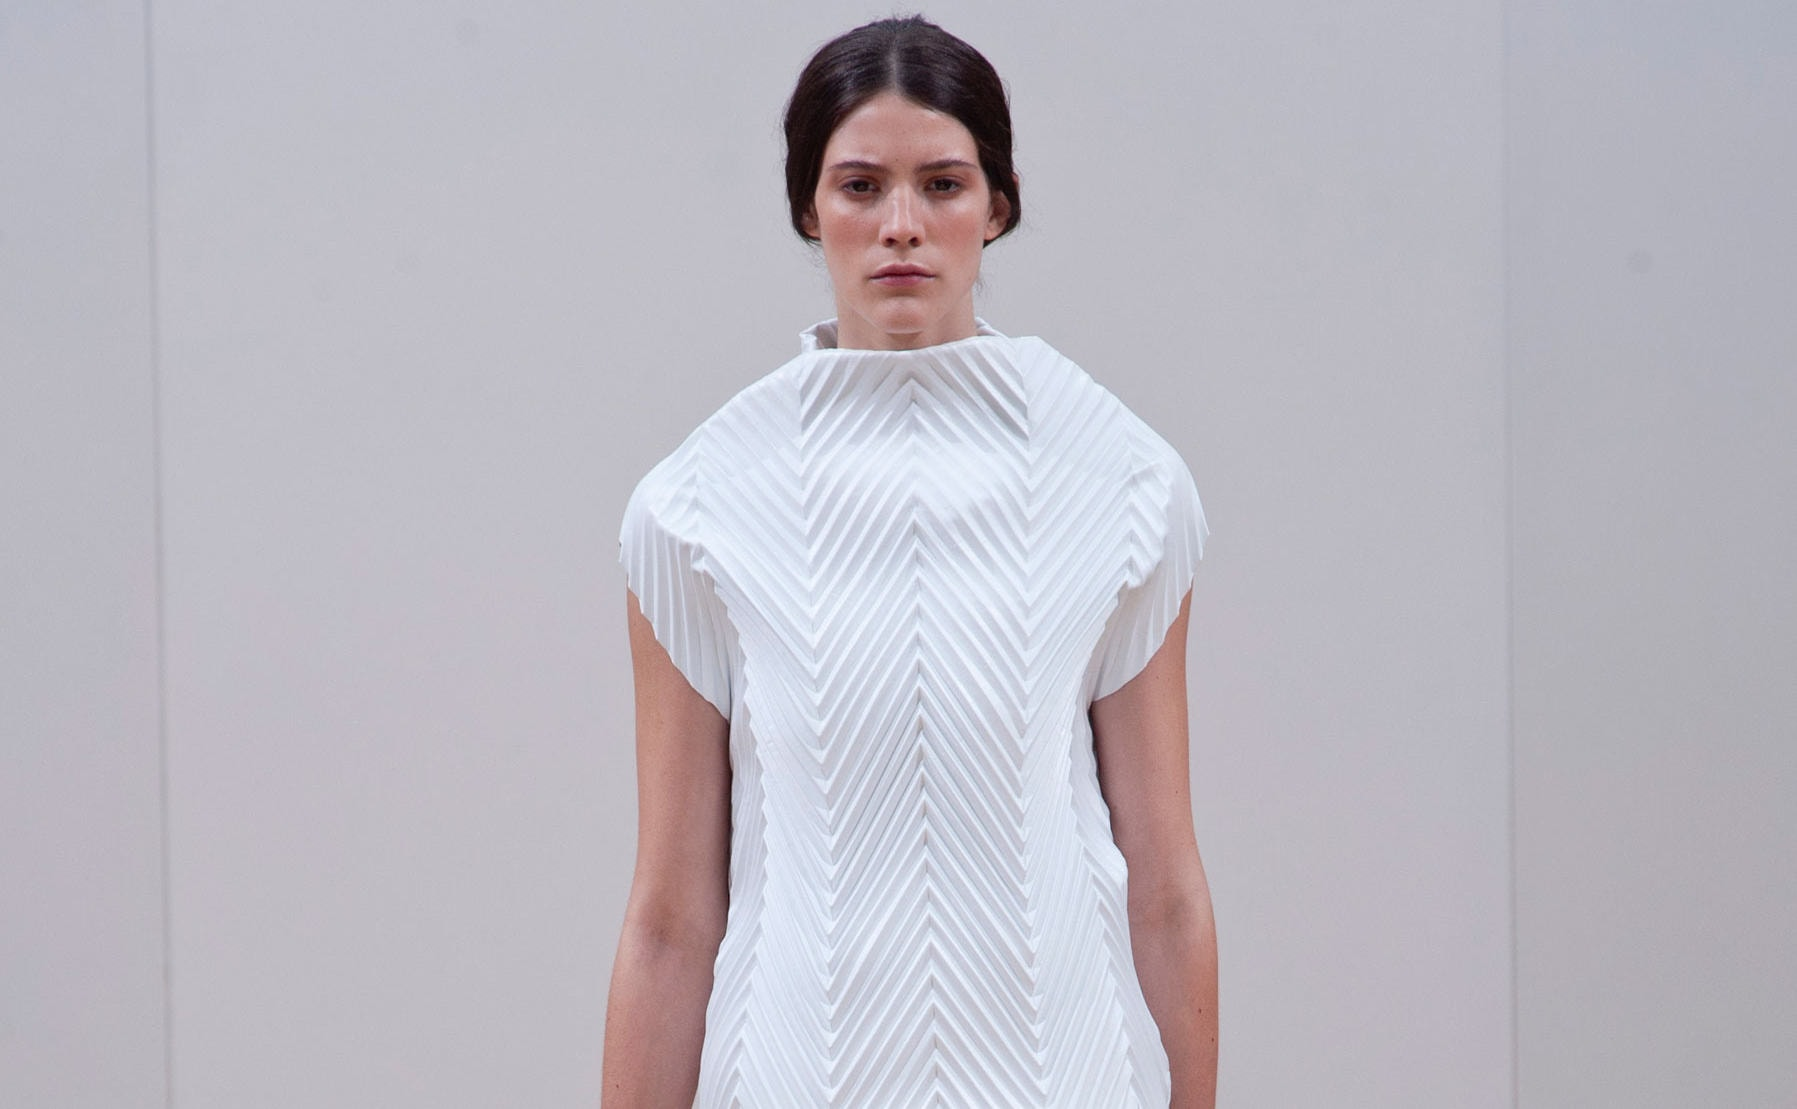 Key Fashion Theme Trend for Spring/Summer 2015